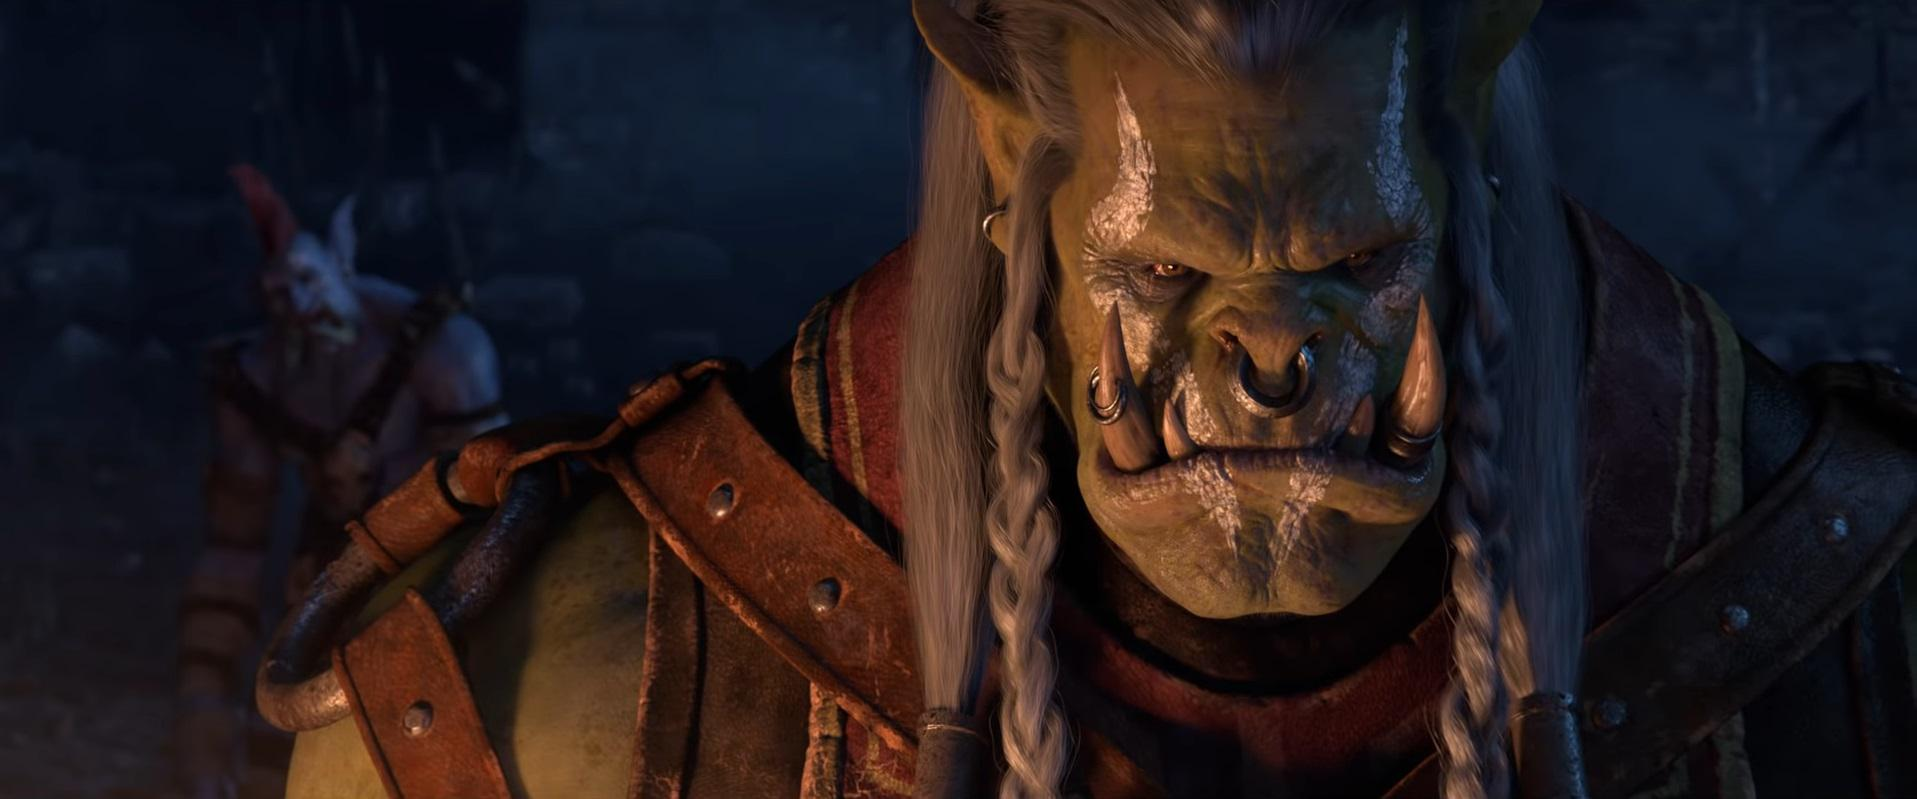 WoW Saurfang Cinematic title 3